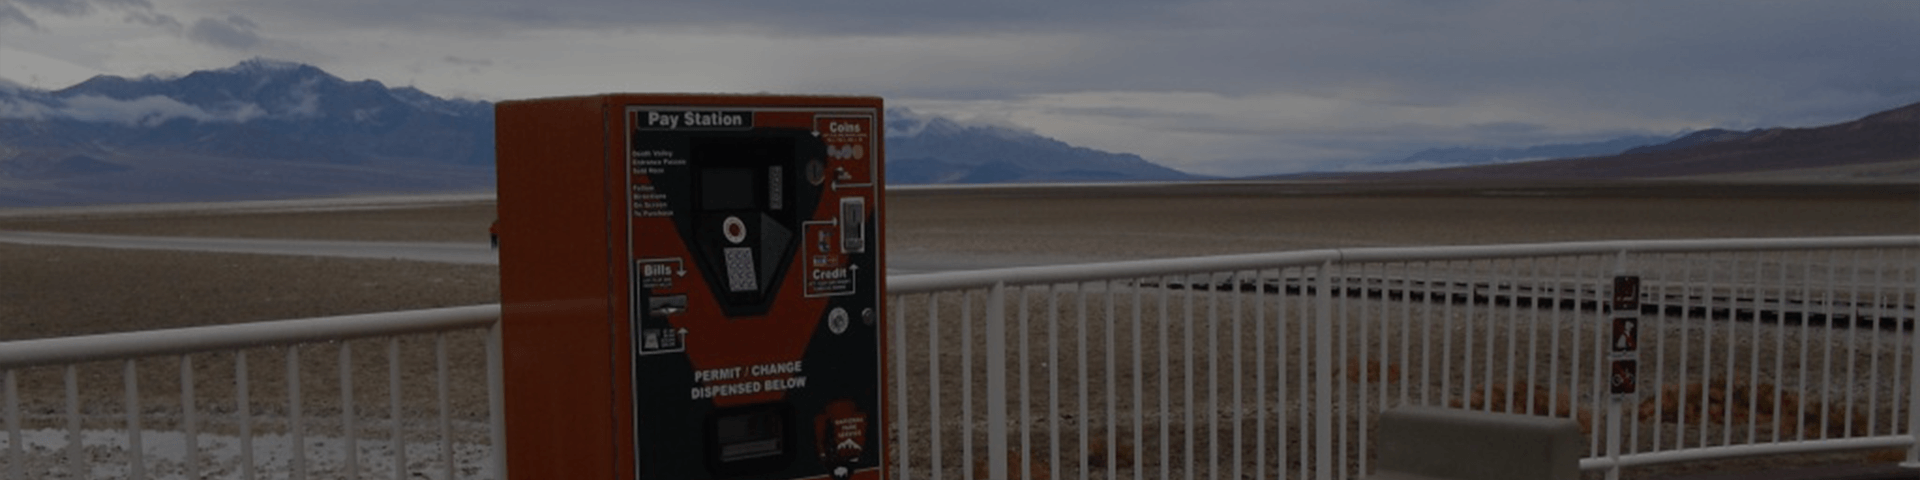 VenTek International Automated Fee Machine for National Parks